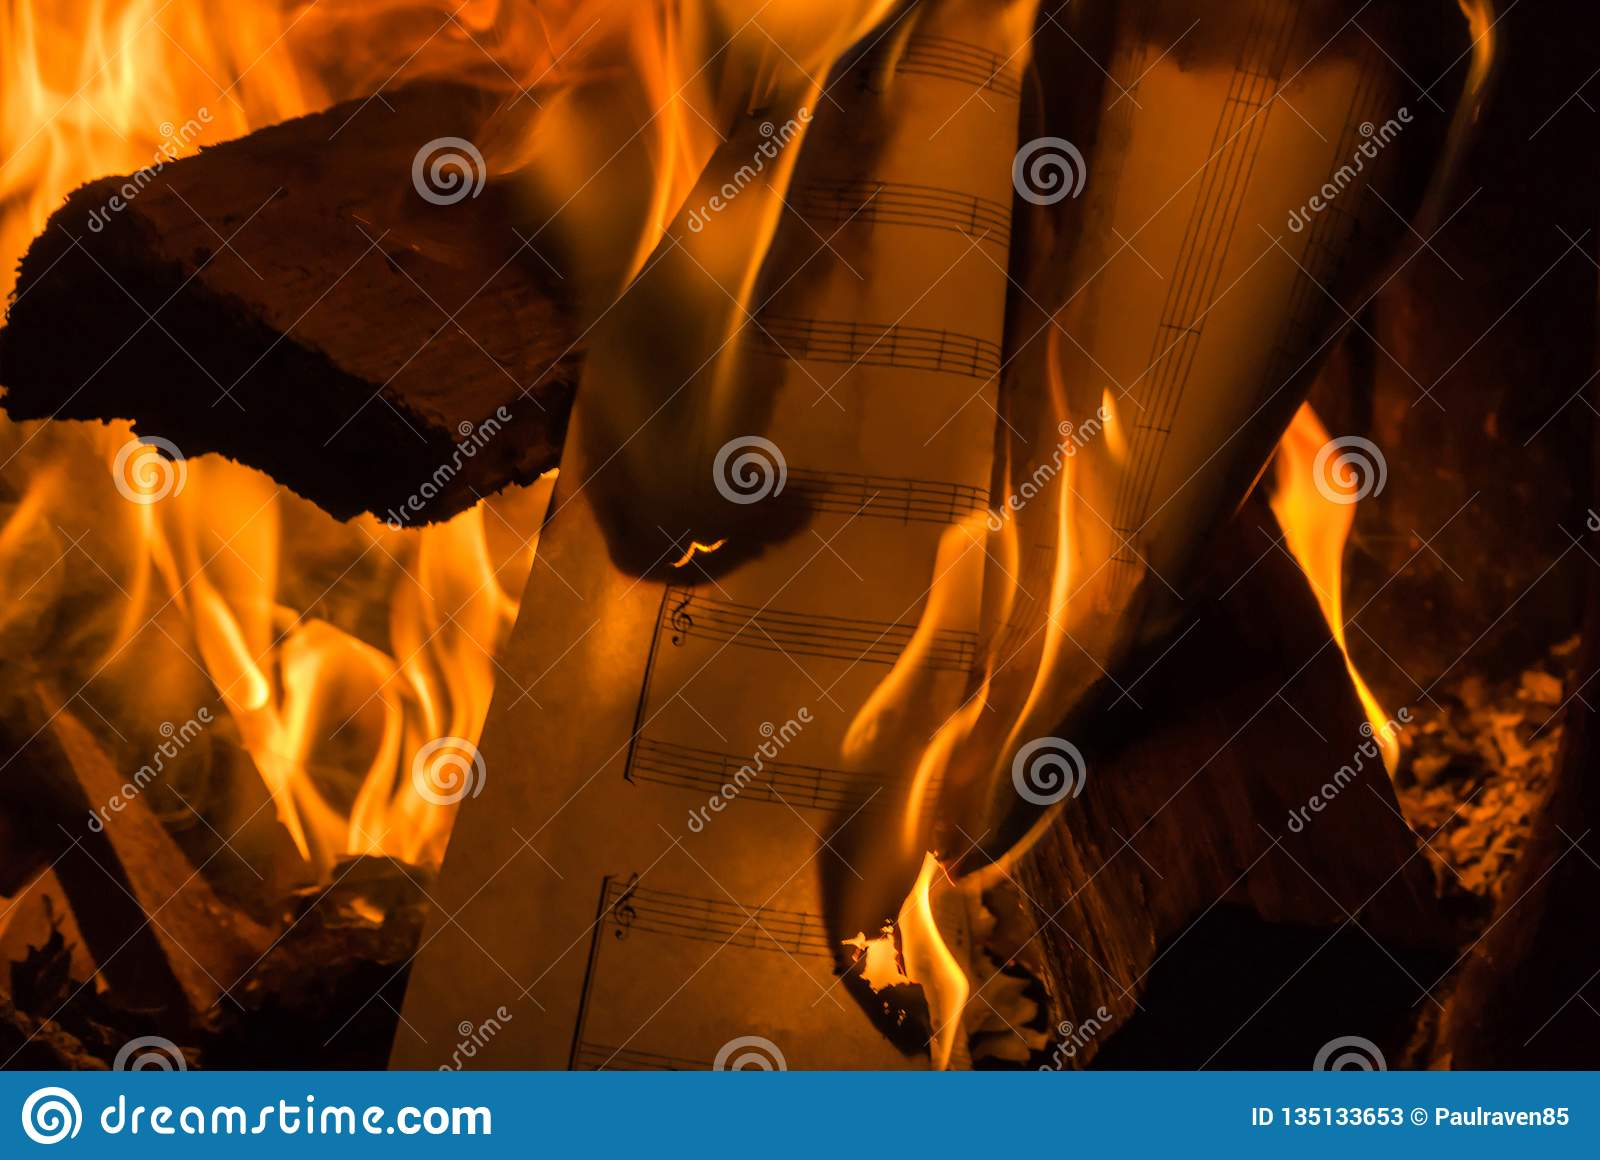 Photograph Of A Burning Blank Sheet Of Music Among Logs In